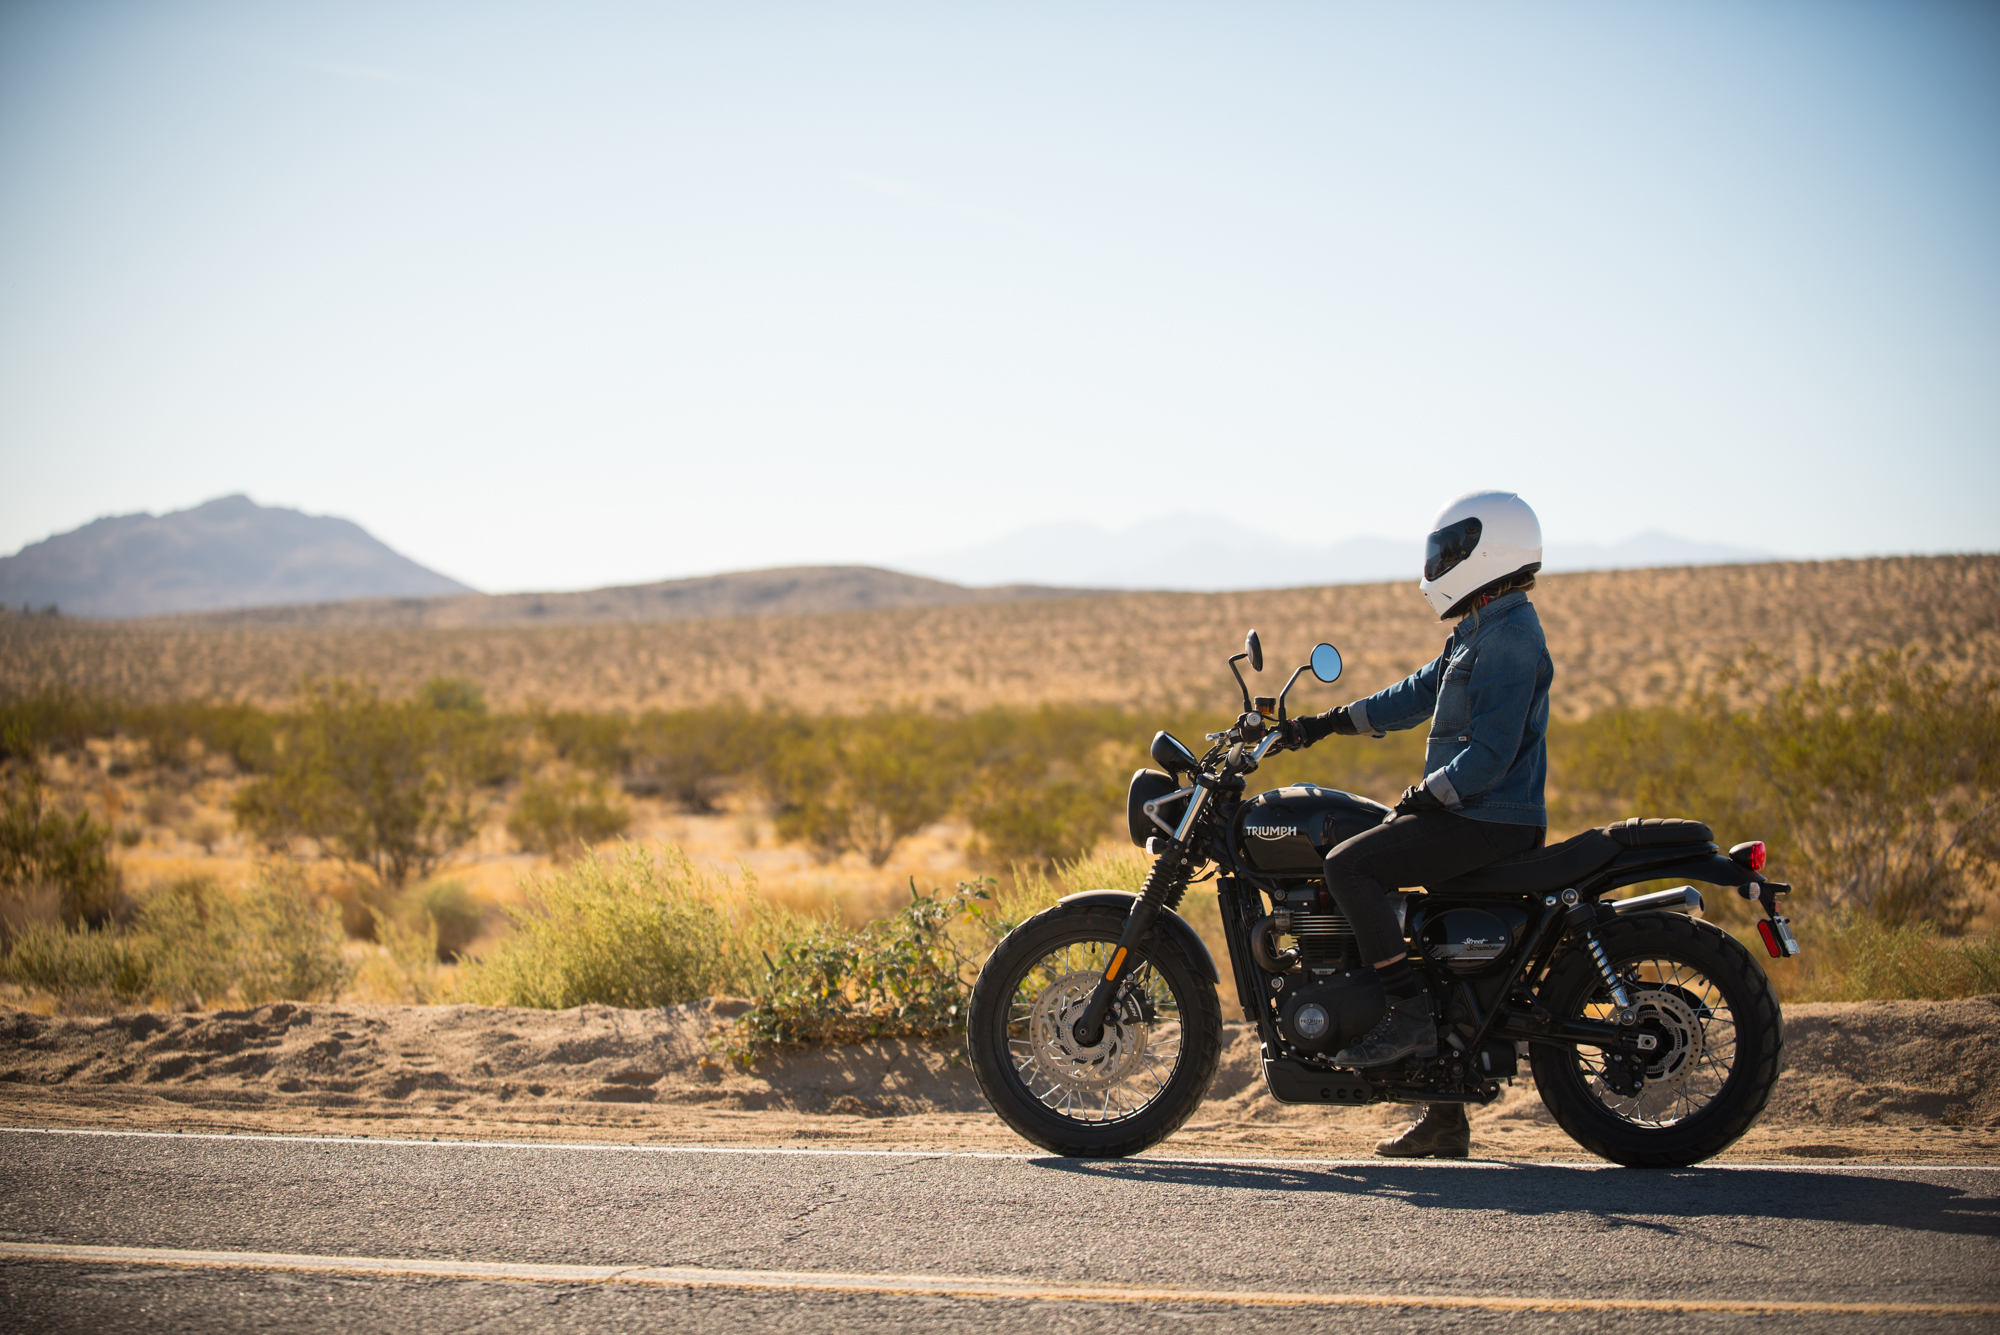 The Triumph Scrambler is truly a beautiful machine. Photo by Virginia Cagney